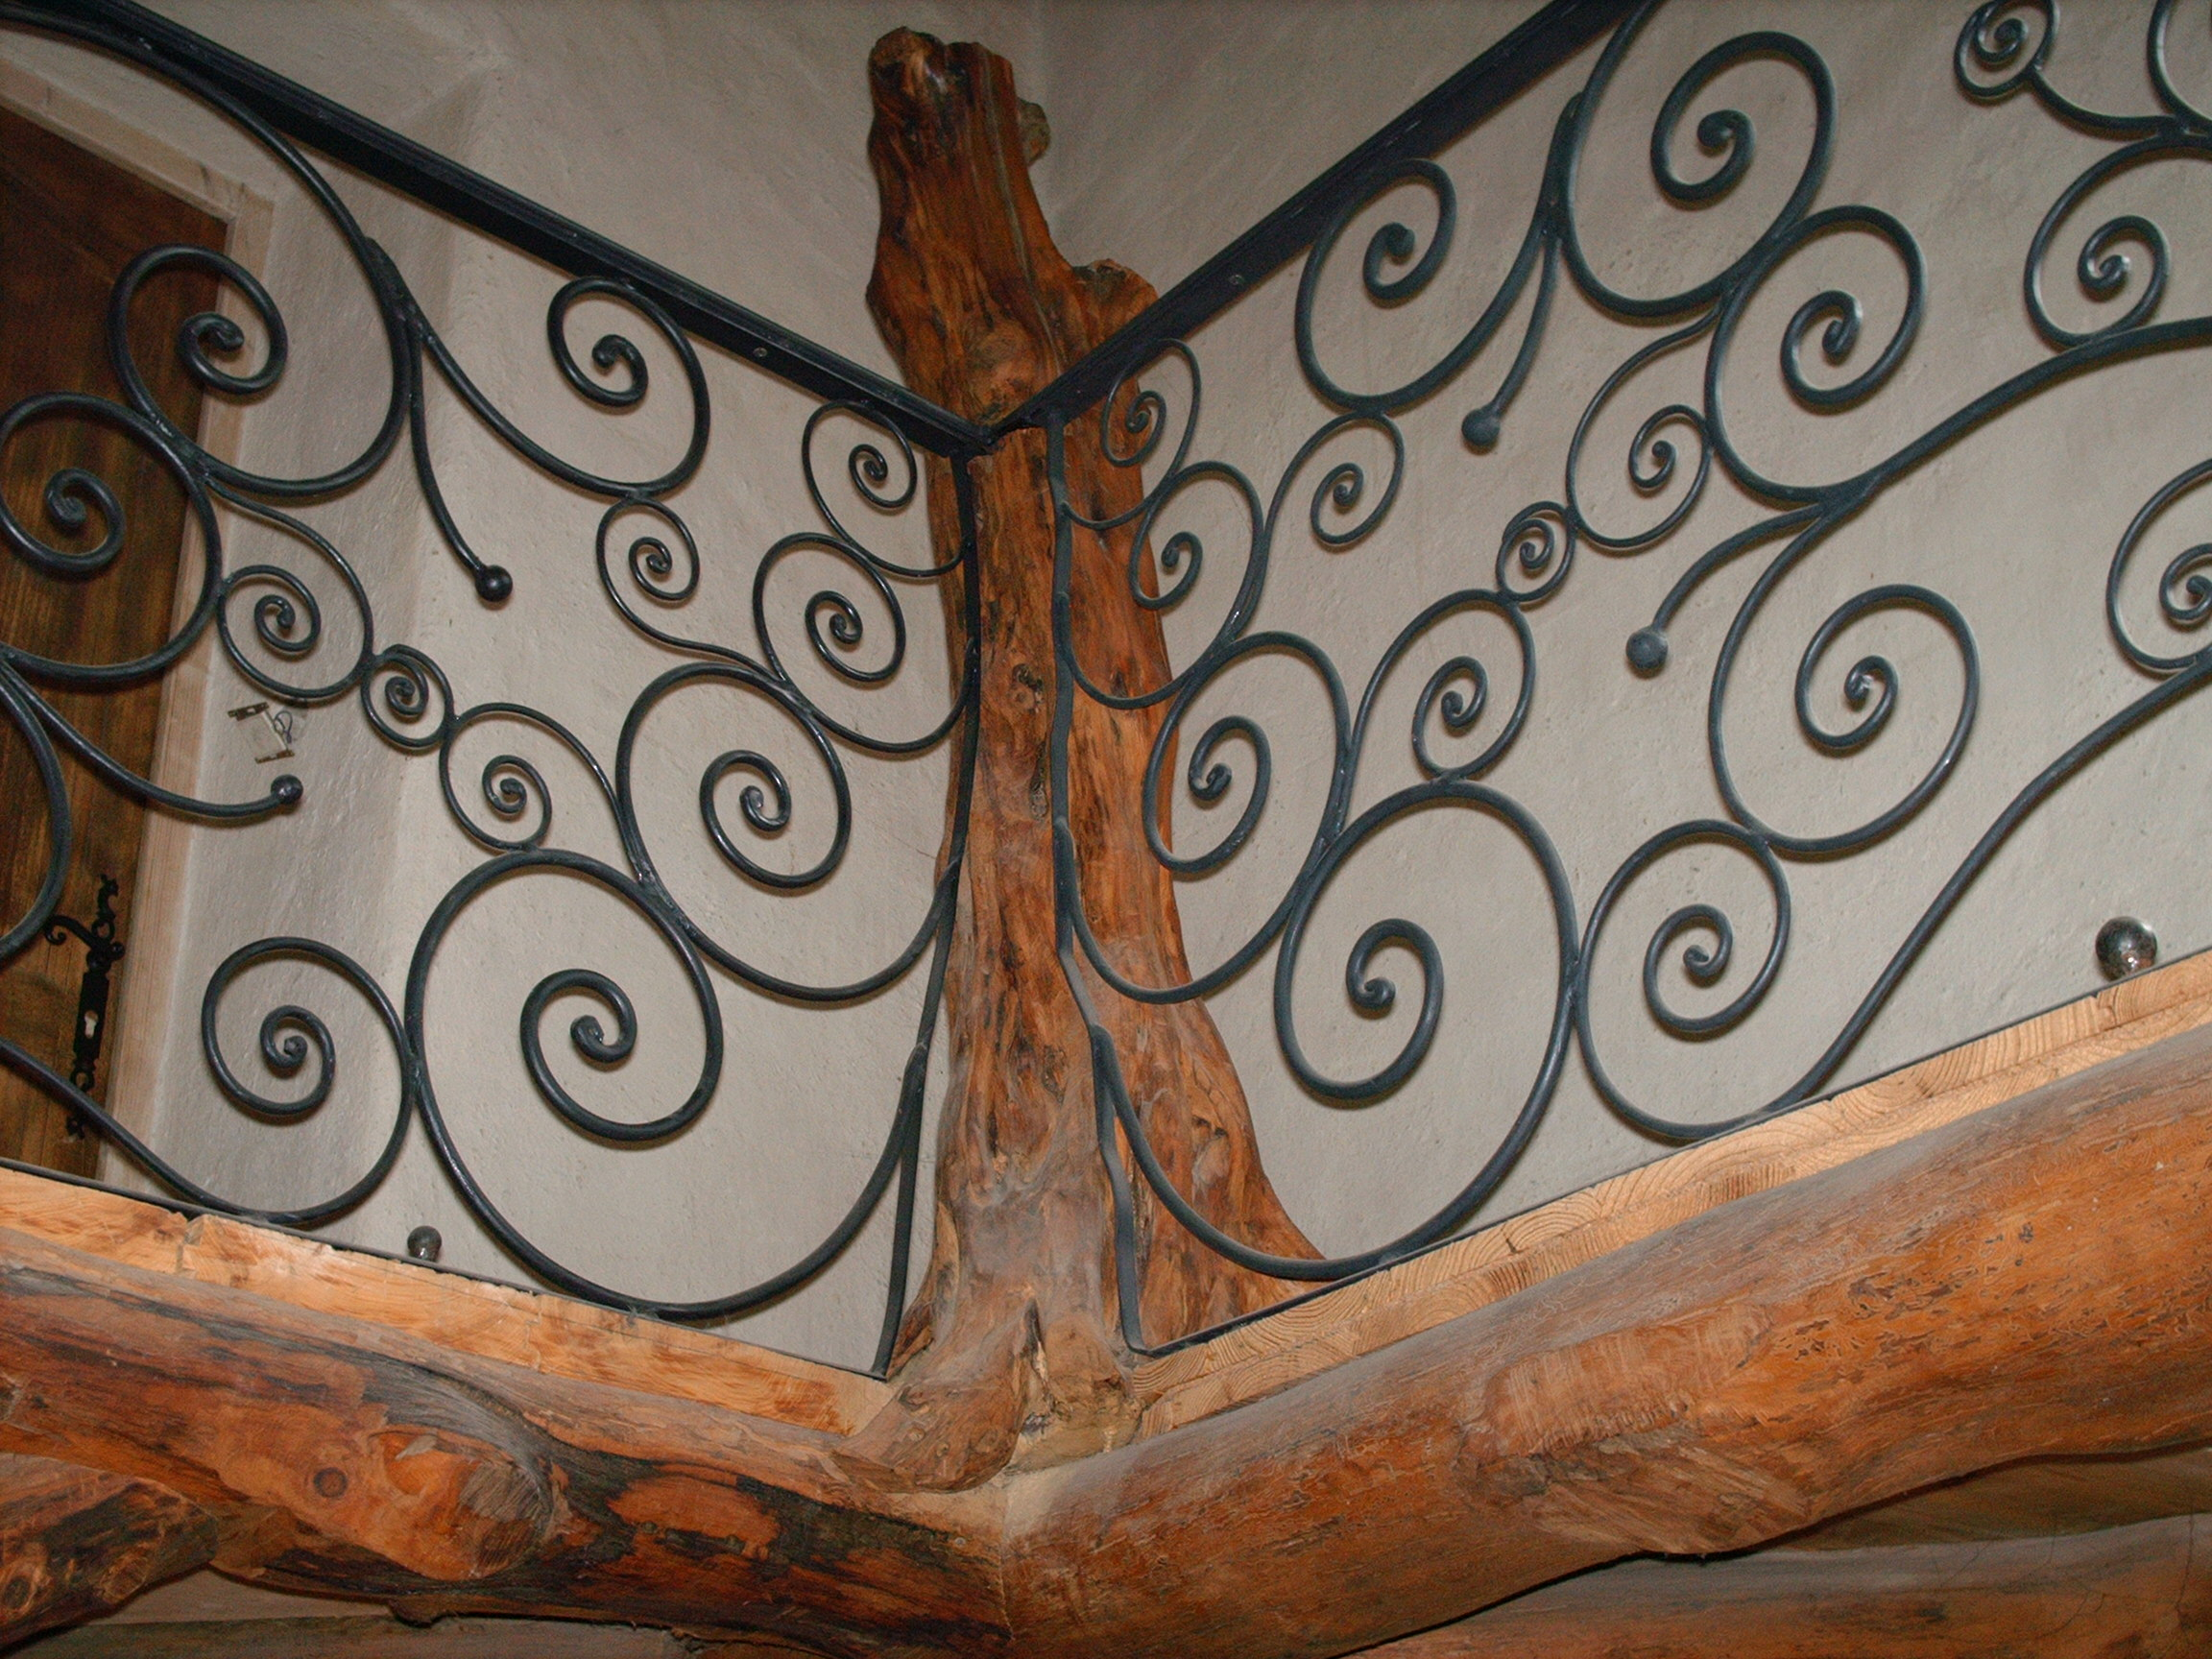 balustrade-stair-railings-wrought-iron-in-a-peacock-form